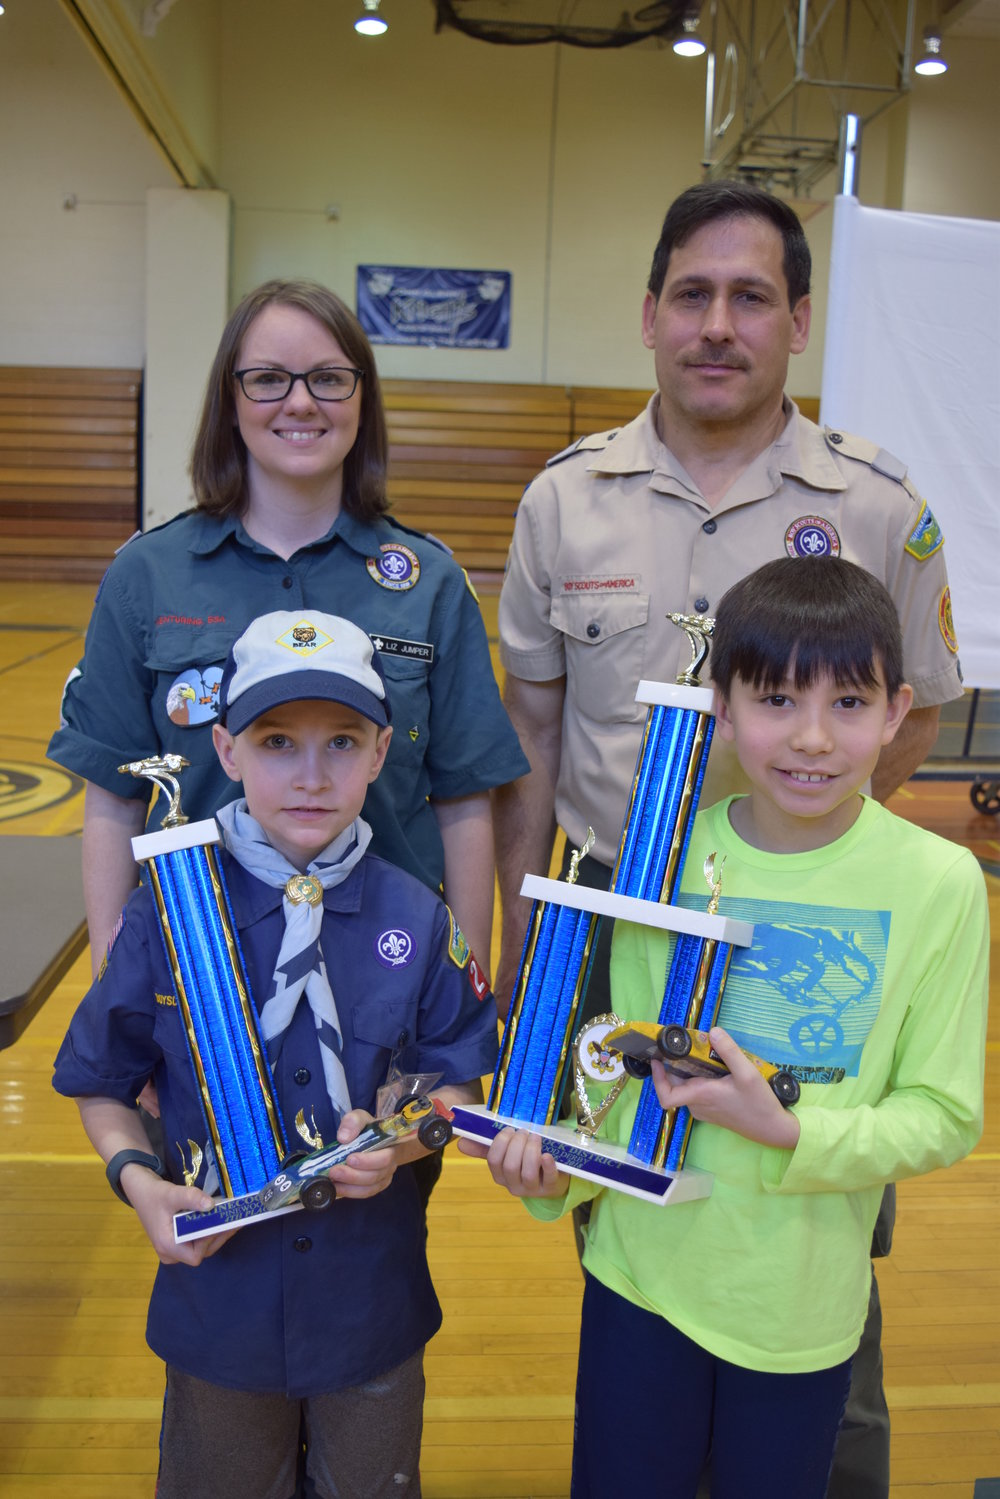 Jack R., front-left, and Evan A., front-right, of Greenlawn's Pack 225 placed fourth and third respectively in last weekend's races. They're pictured with their trophies and hand-crafted pinewood derby racecars.